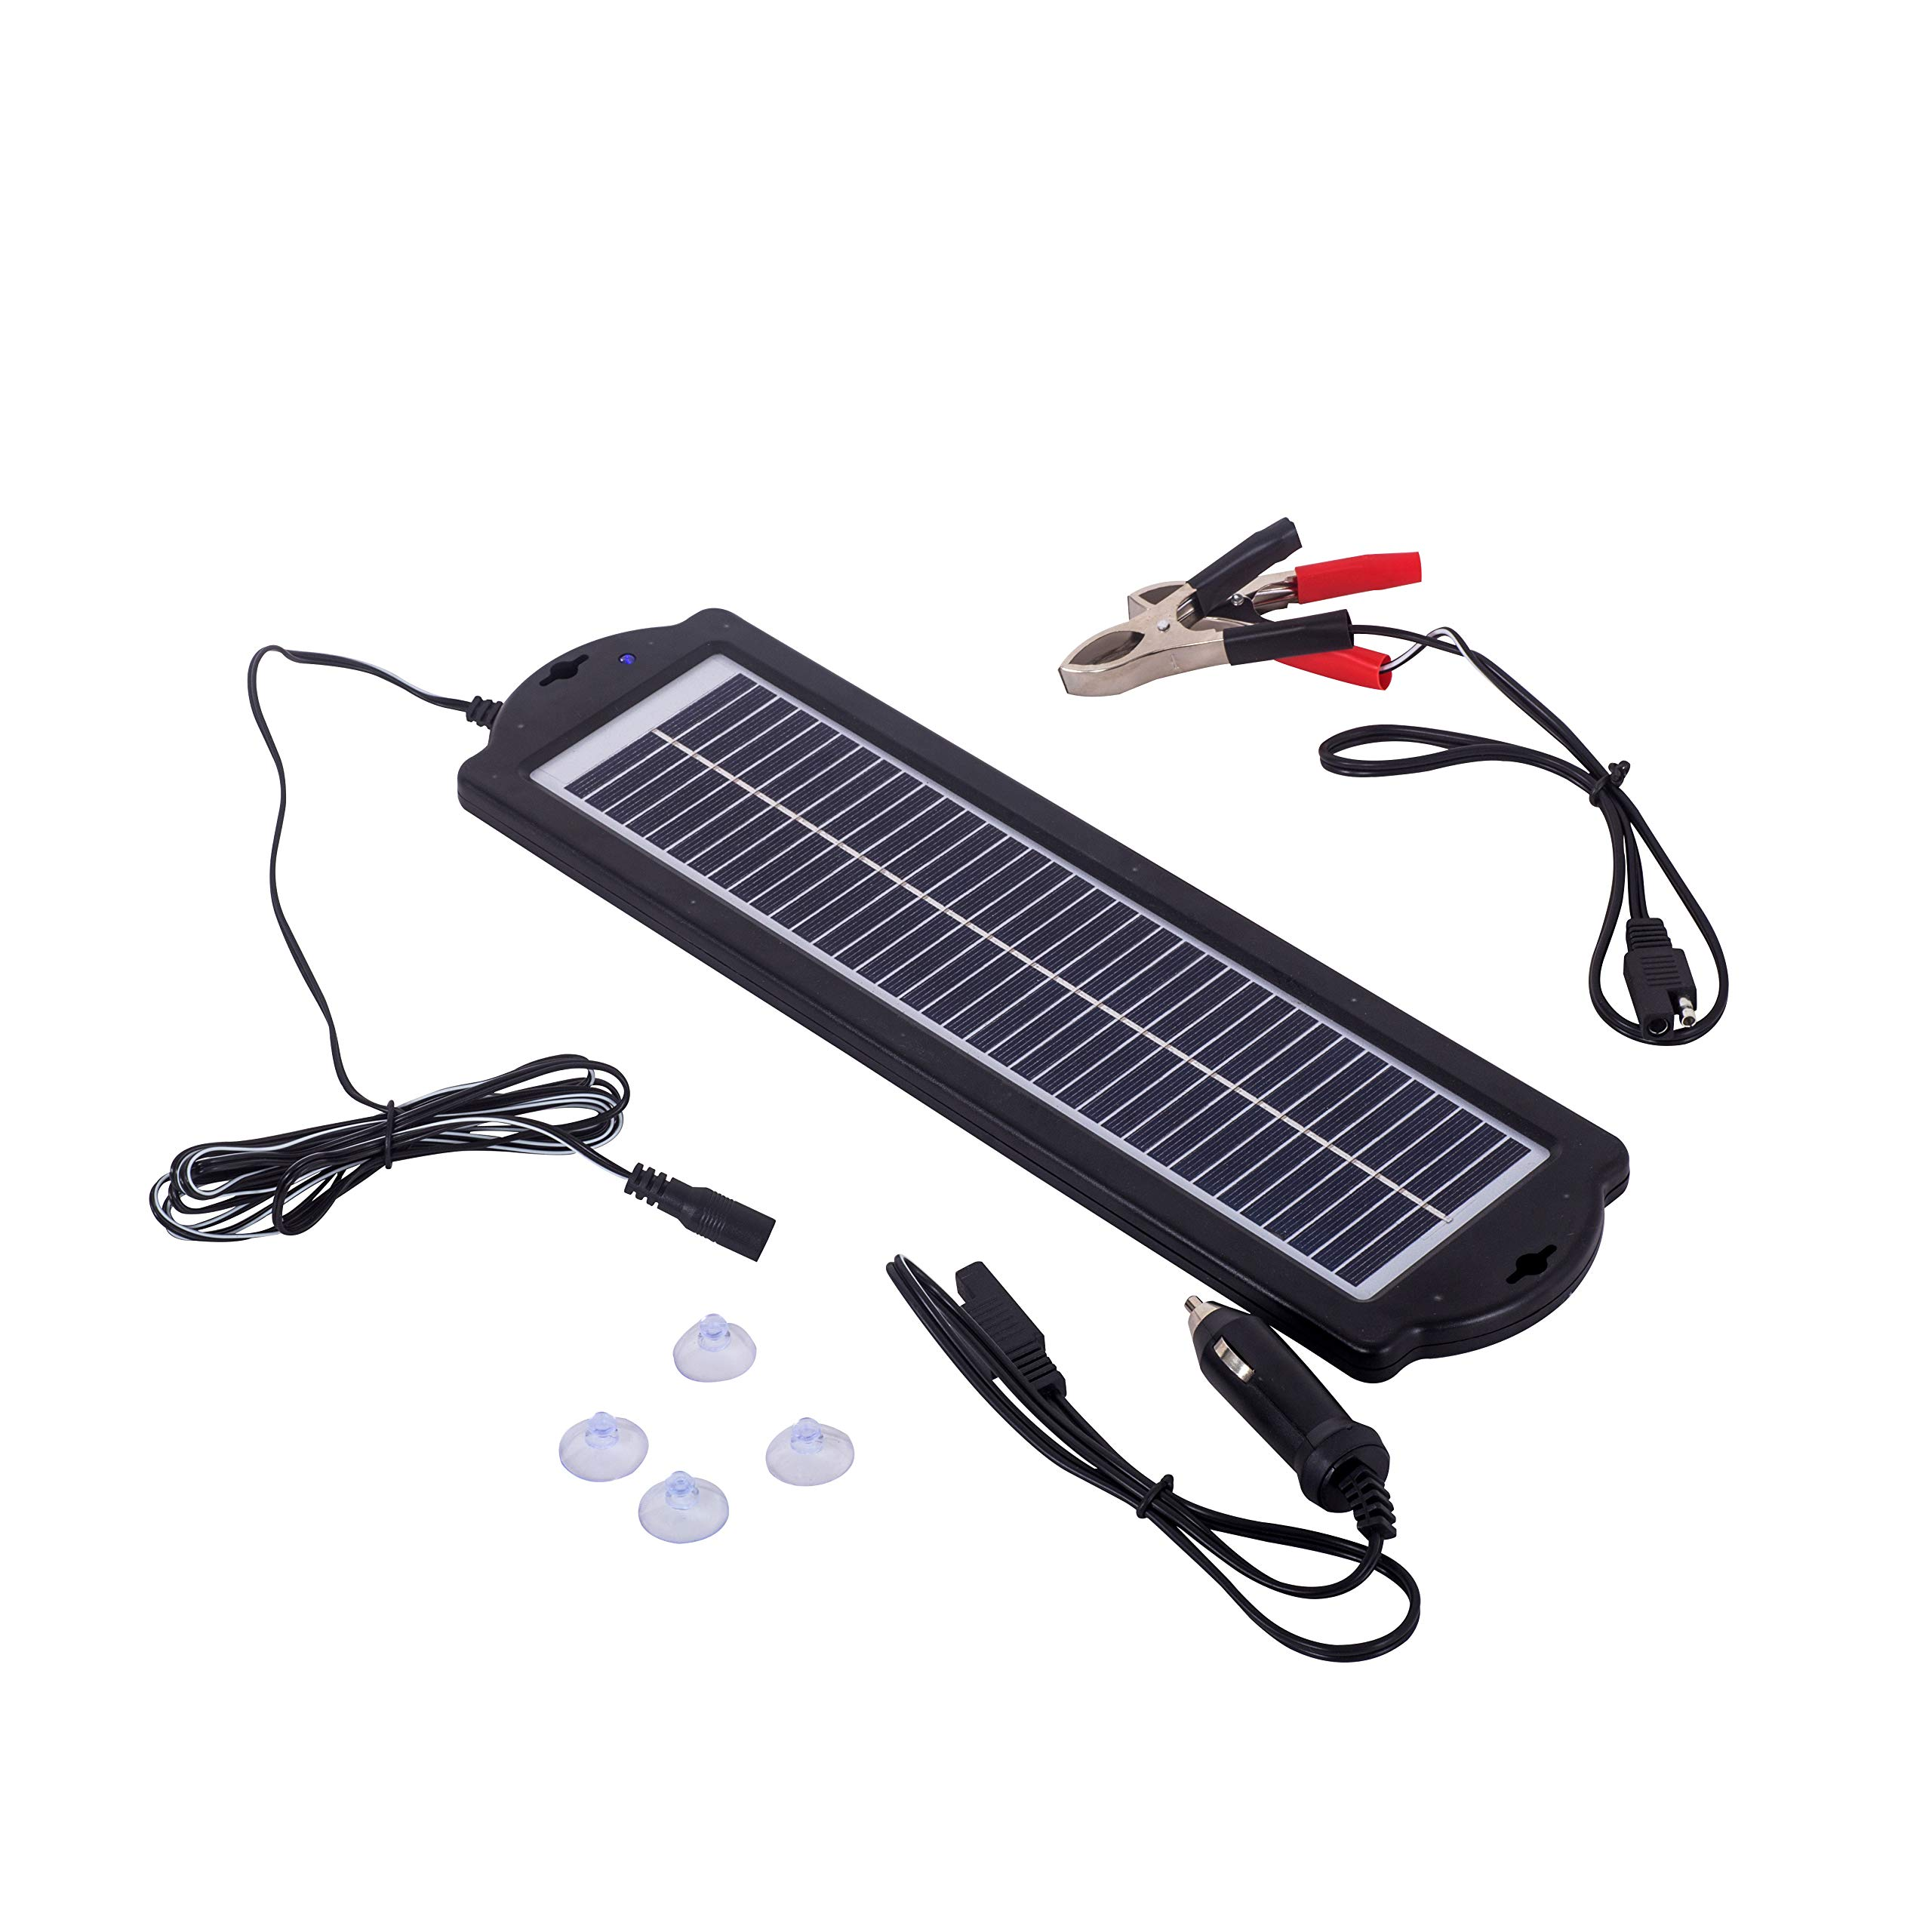 Betop-camp 3W 12V Car Battery Trickle Charger Waterproof Portable High Conversion Single Crystal Solar Panel with Cigarette Lighter Plug,Battery Charging Clip Line,Suction Cups for Rv Motorcycle Boat